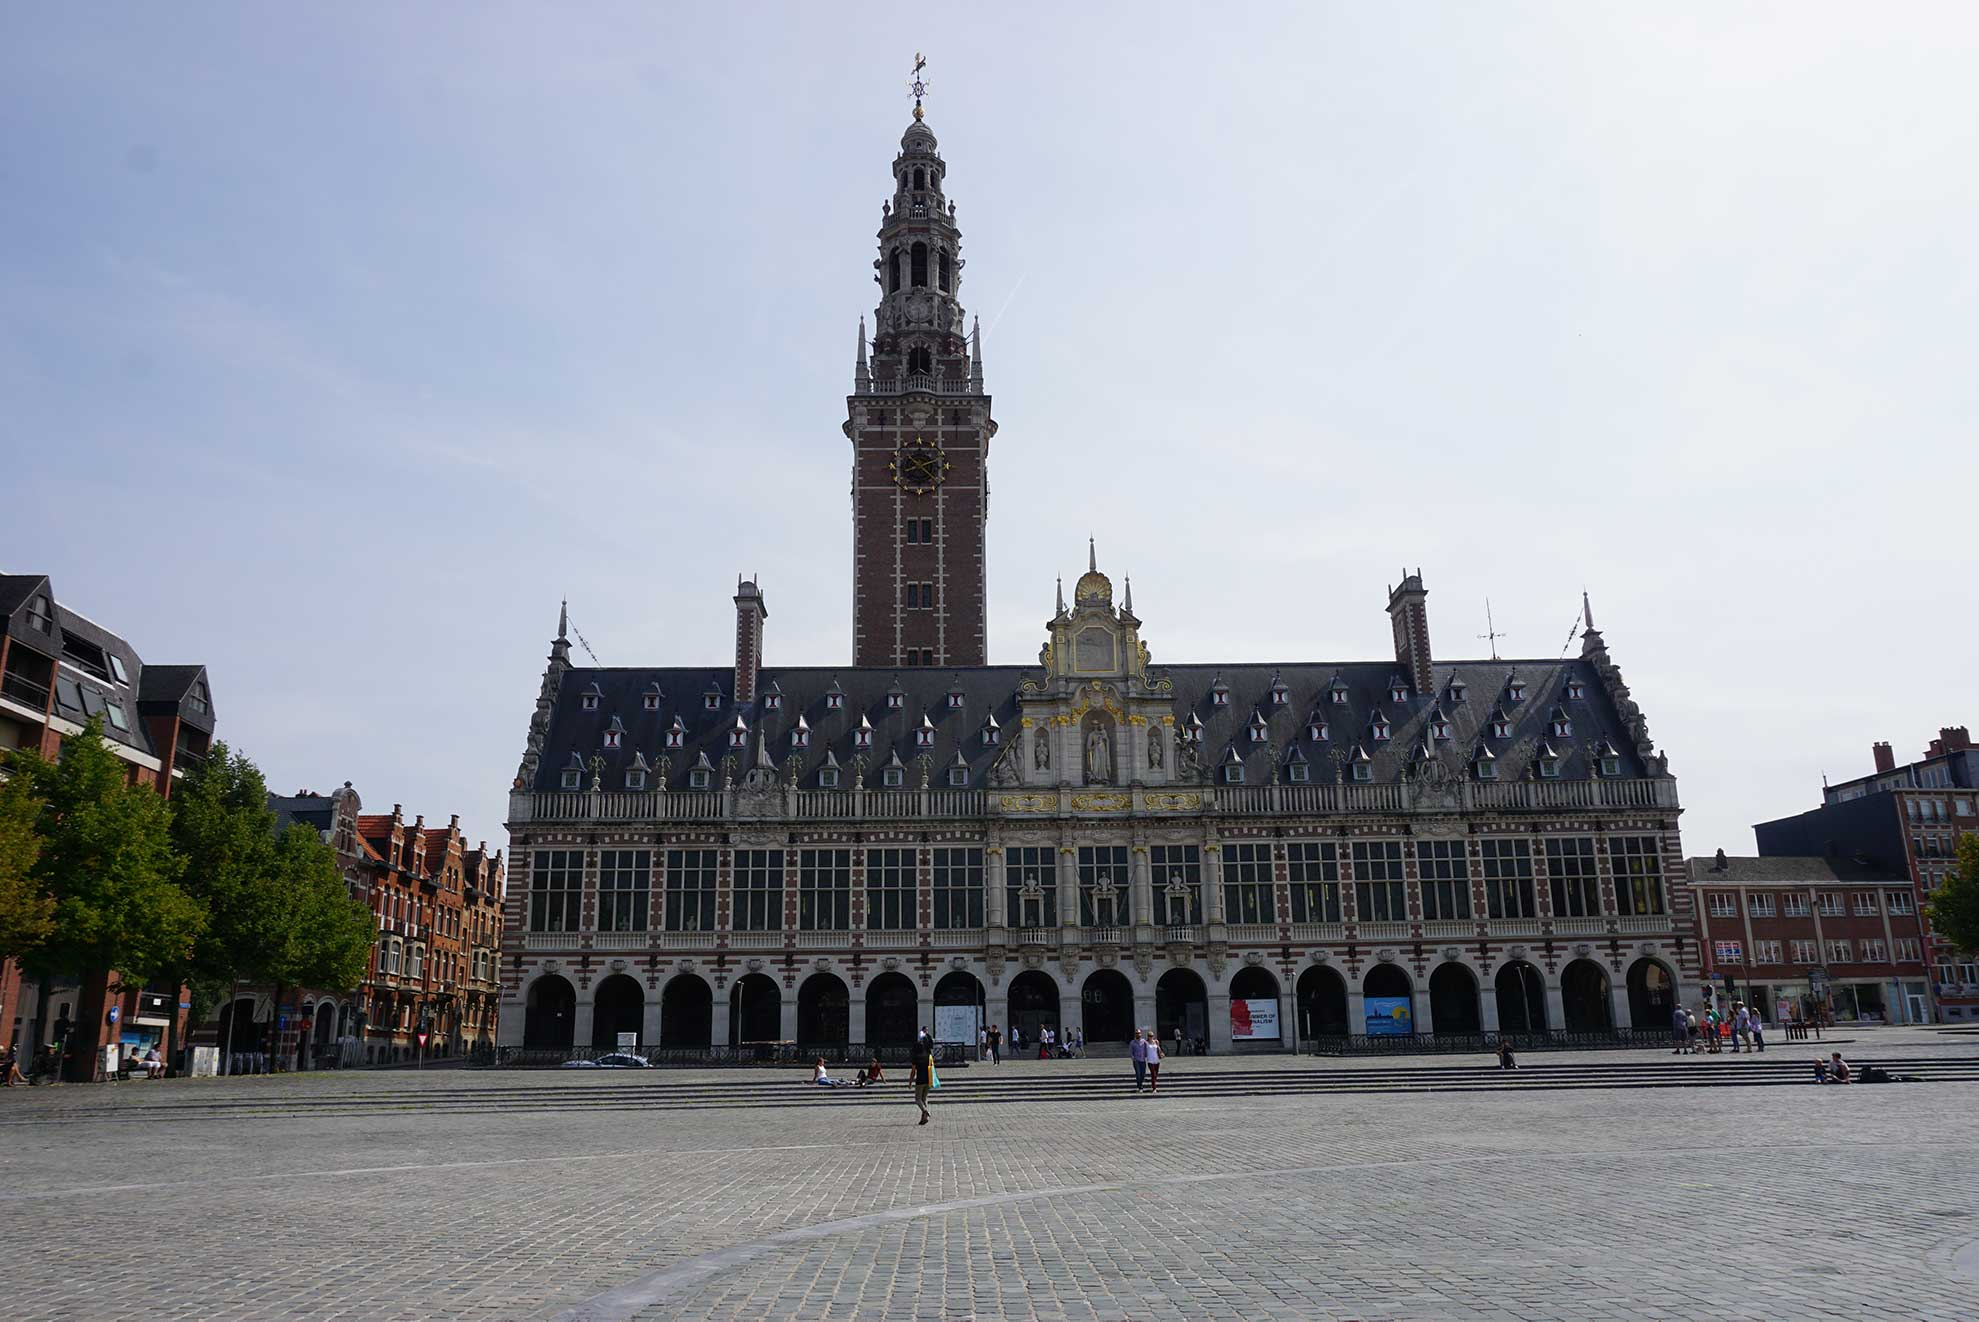 A building in a plaza in Leuven, Belgium with a tower.